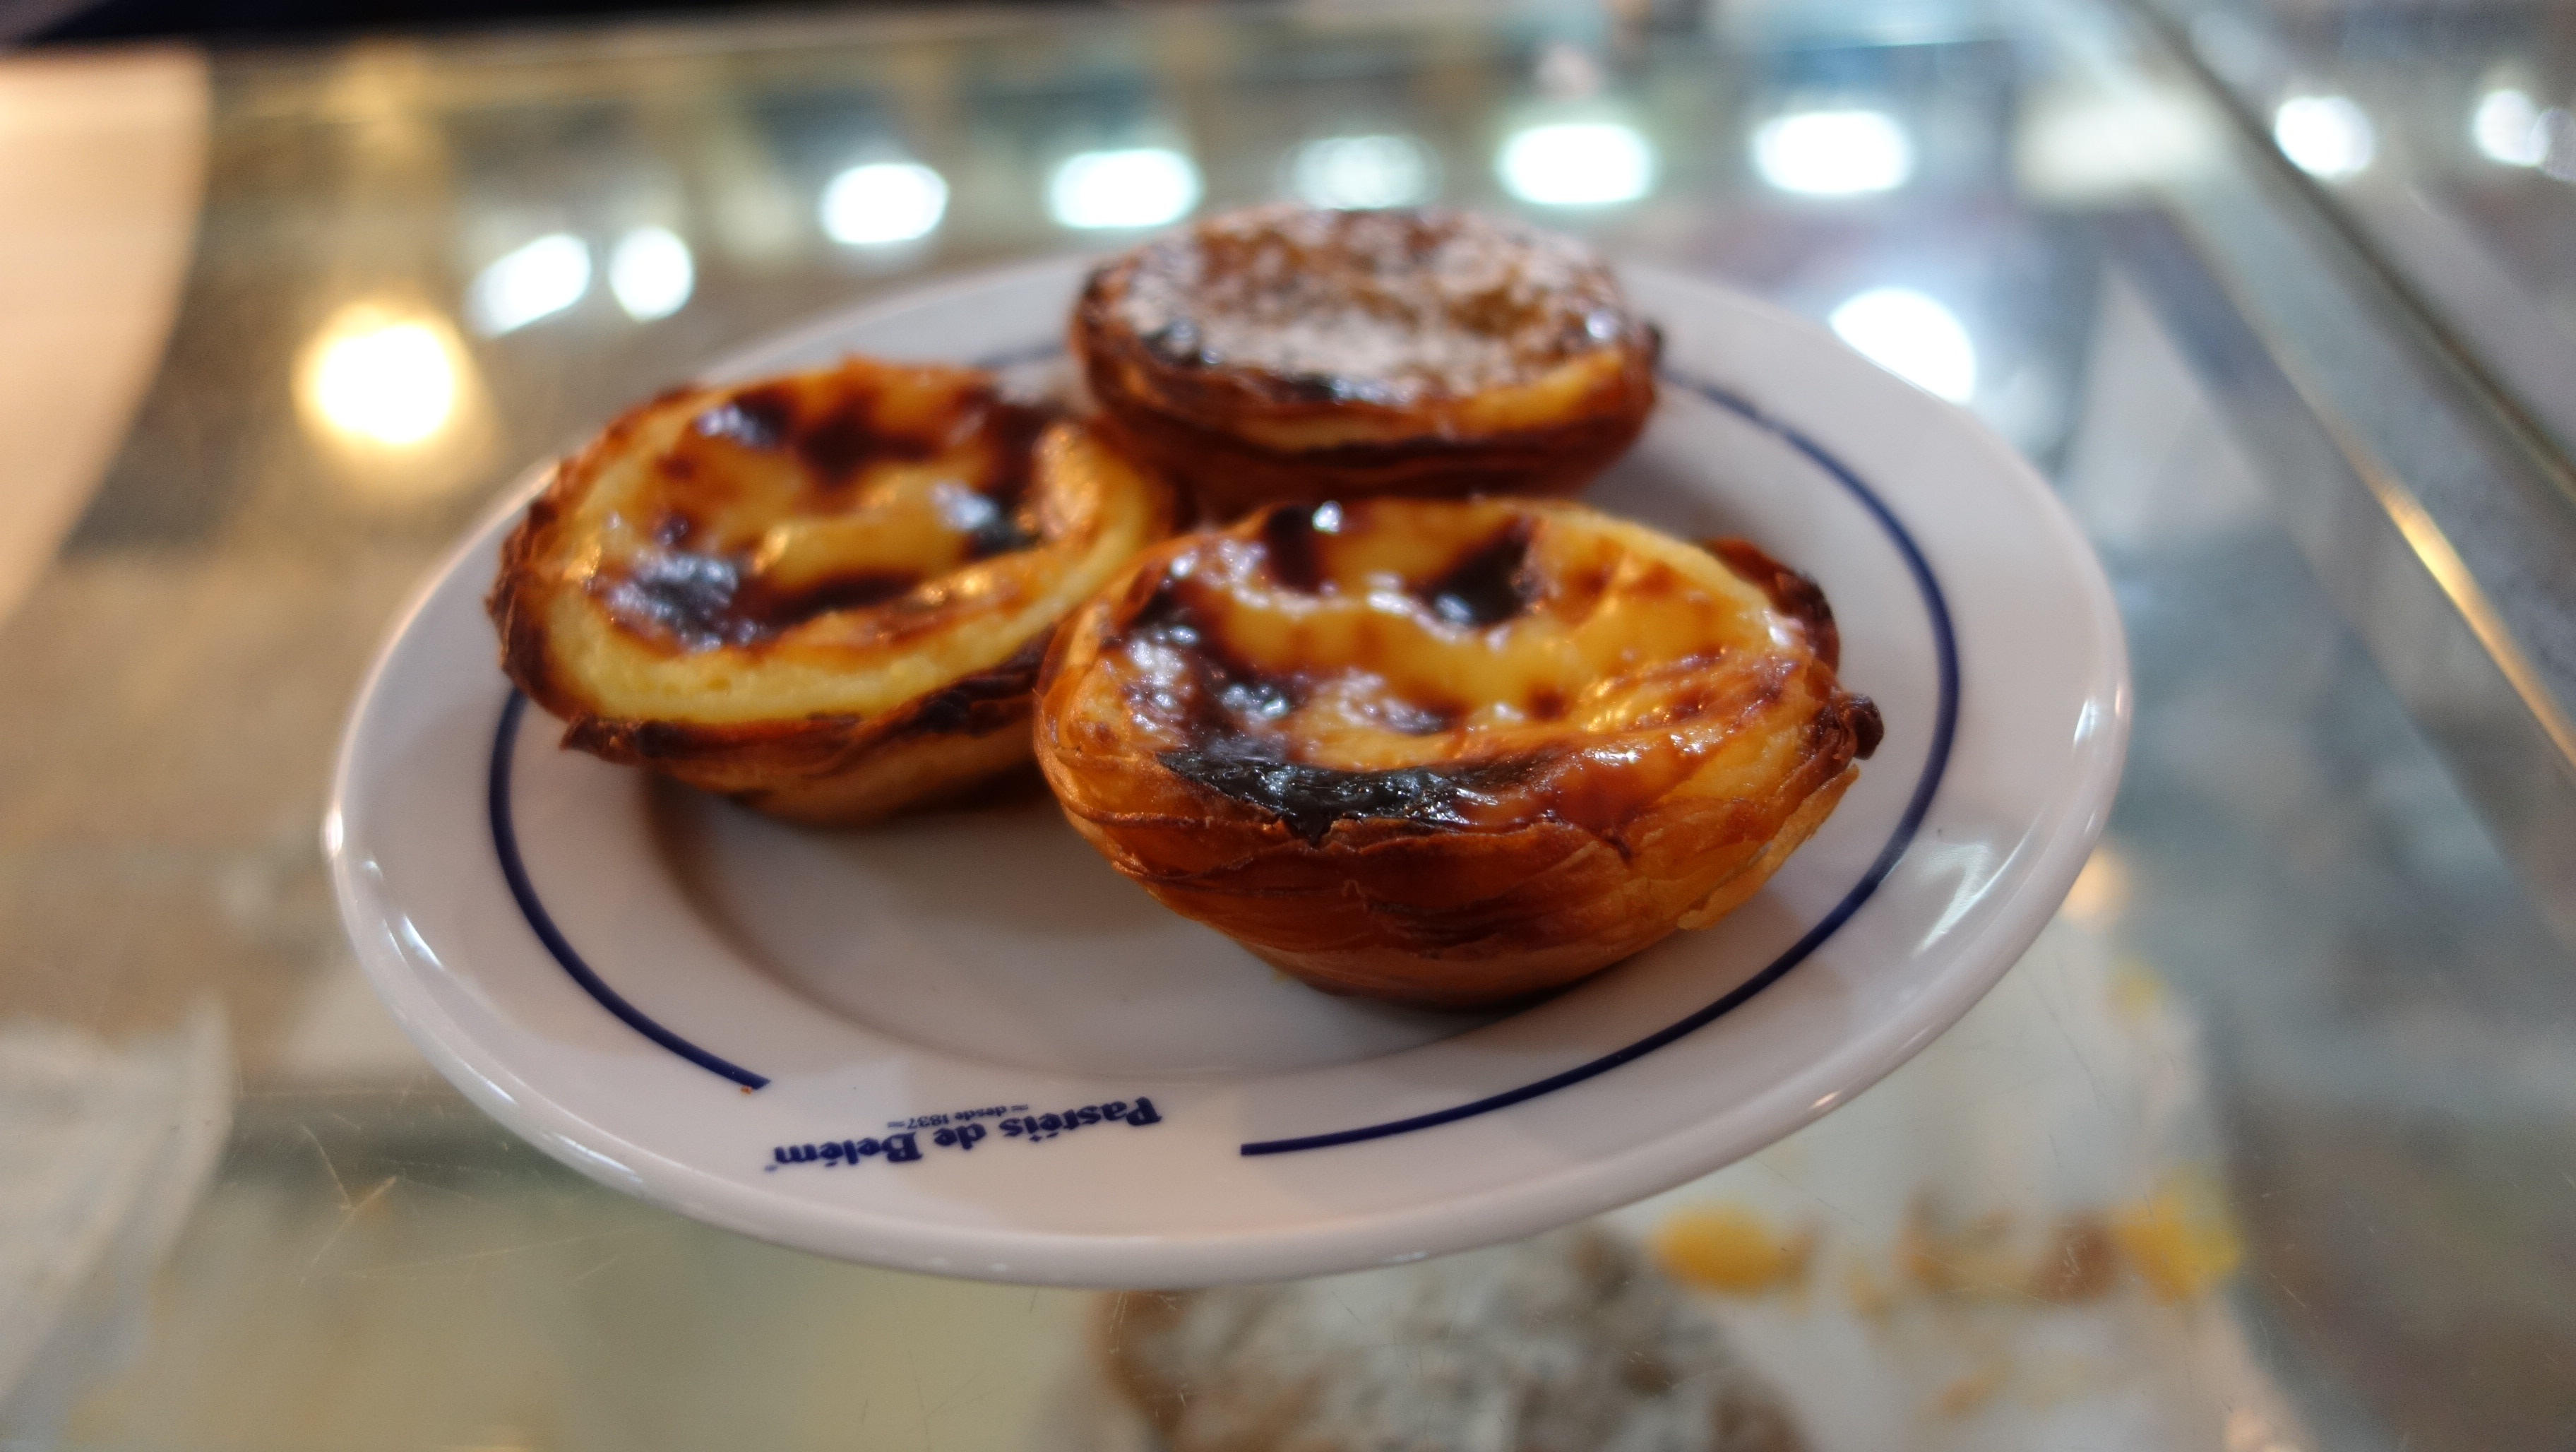 Pastel de Belem is a tasty treat from Pastels de Belem, a pastry shop by Hieronymites monastery. Pastel de nata is a Portuguese egg tart pastry